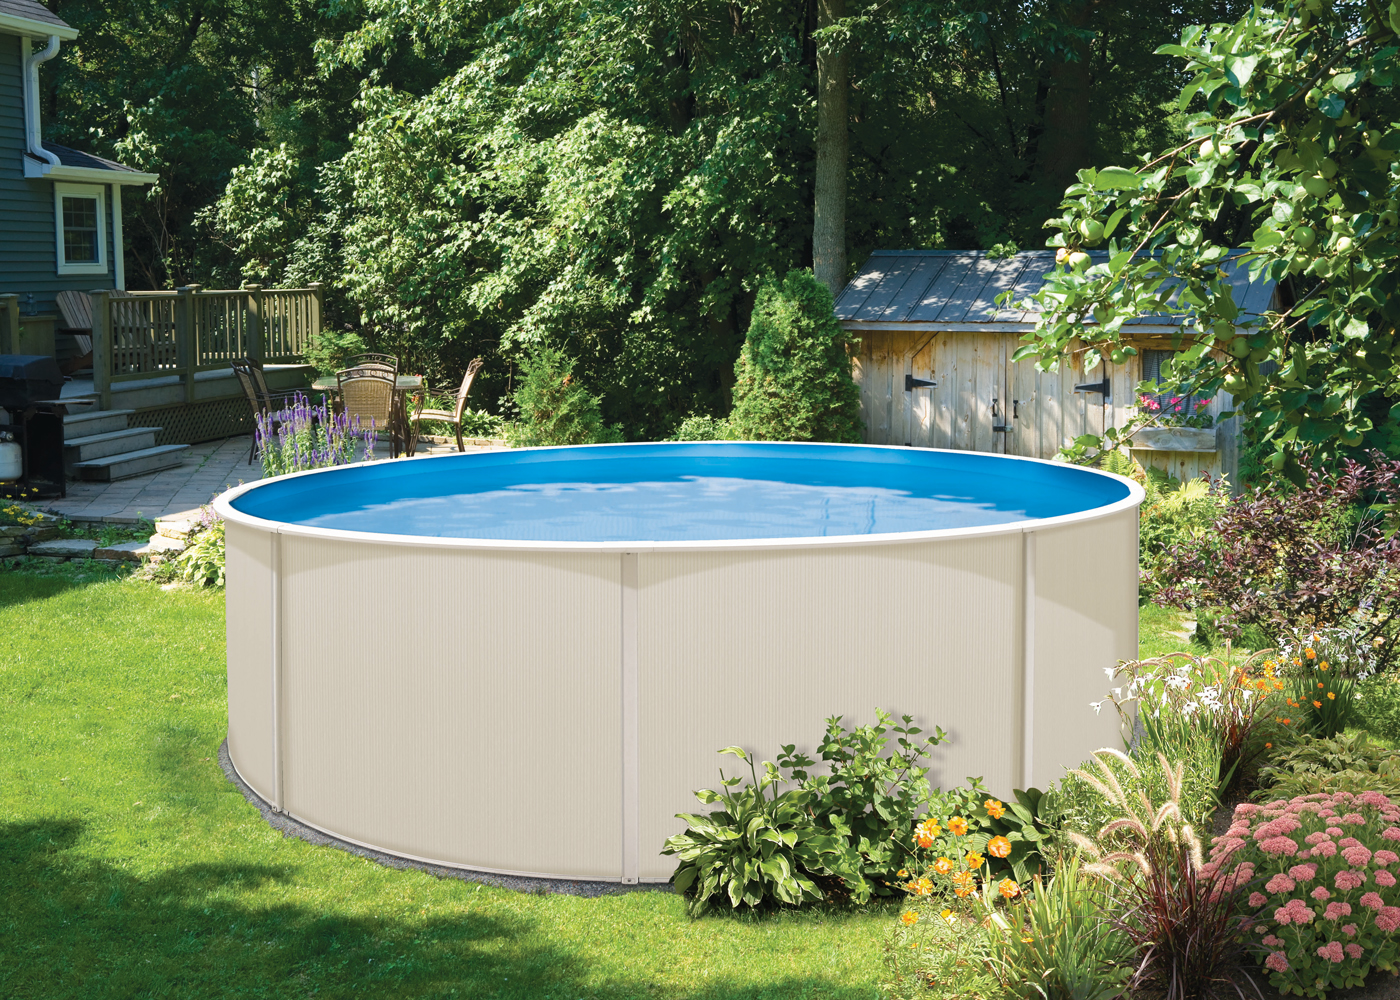 Blue lagoon above ground swimming pool kits for On ground pools